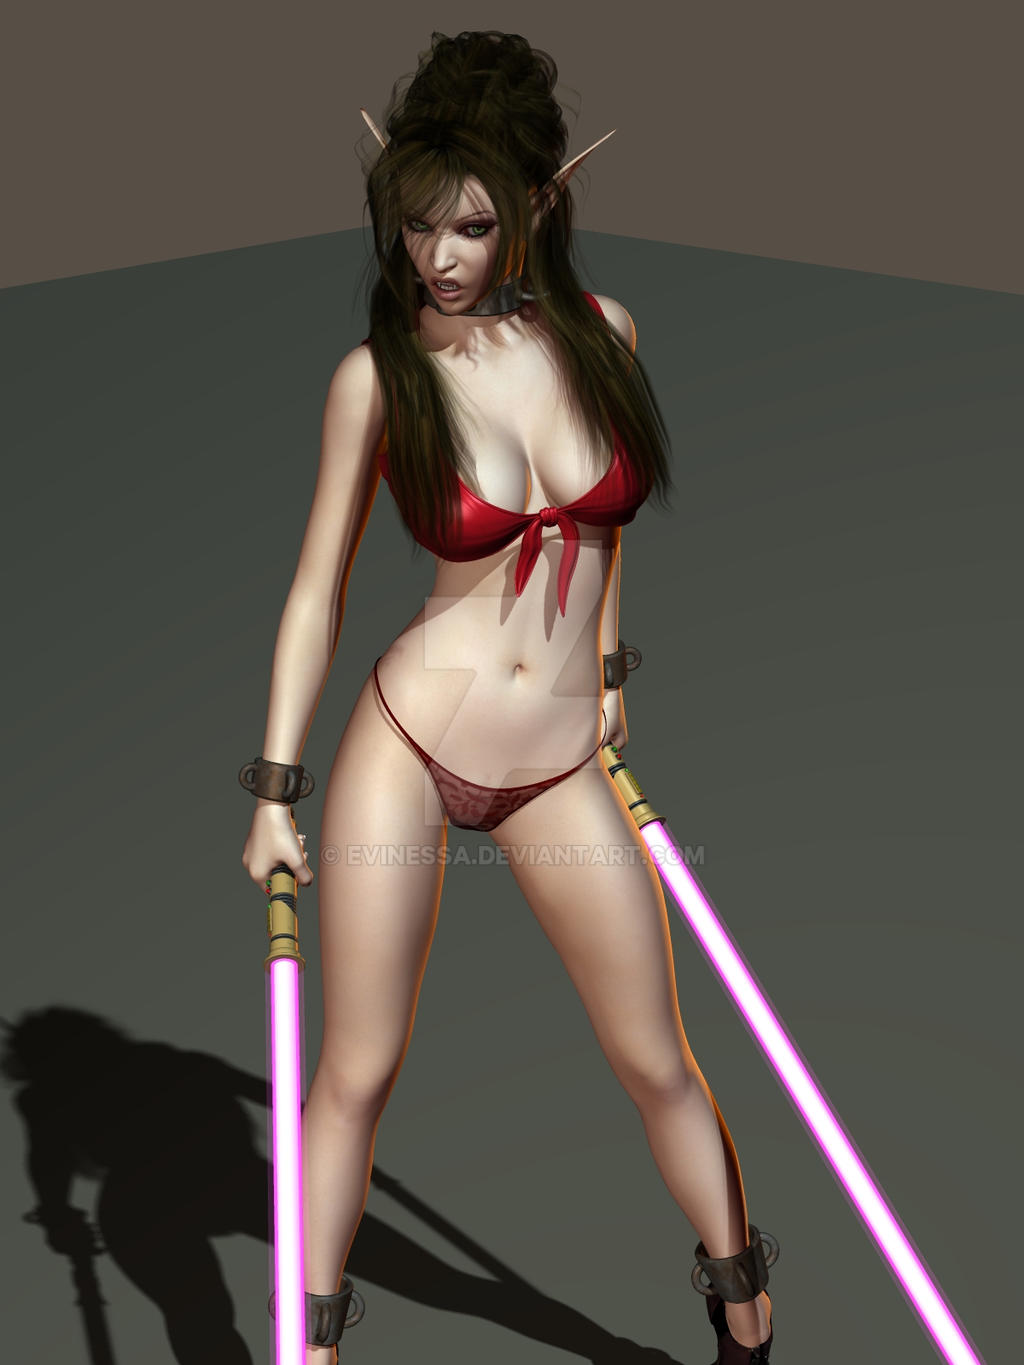 Hot dark elf picture fucked streaming